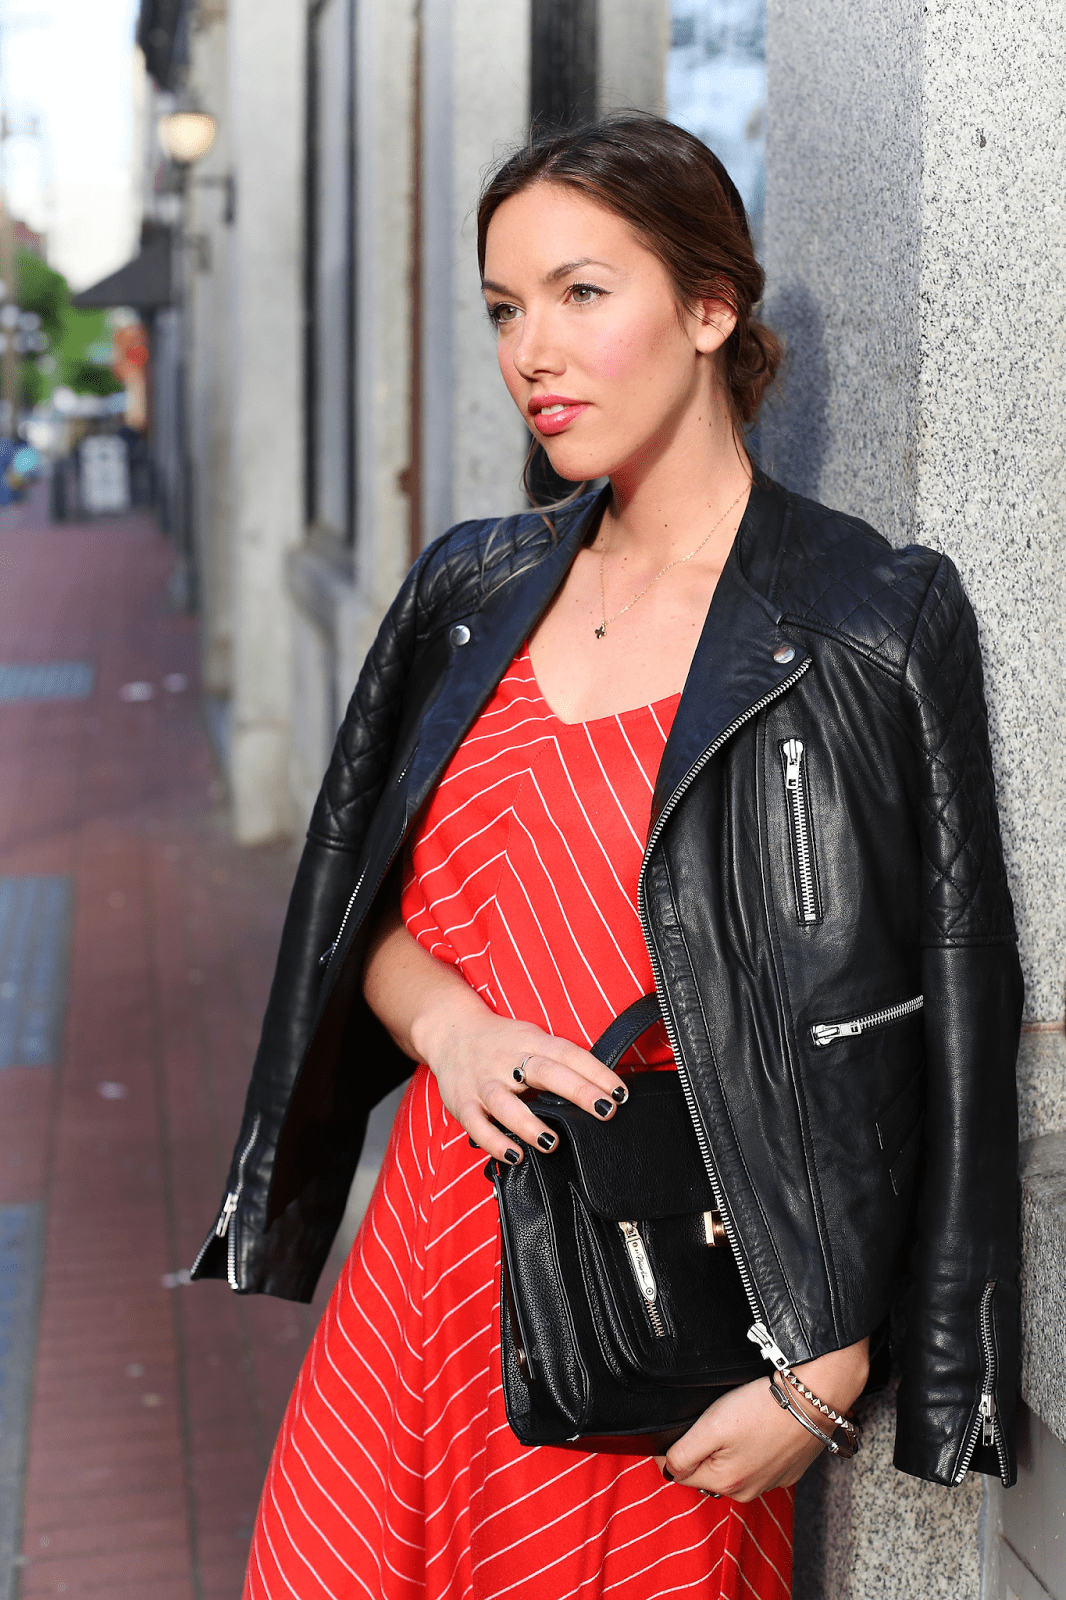 sundress-and-leather-jacket-to-vogue-or-bust-9-1